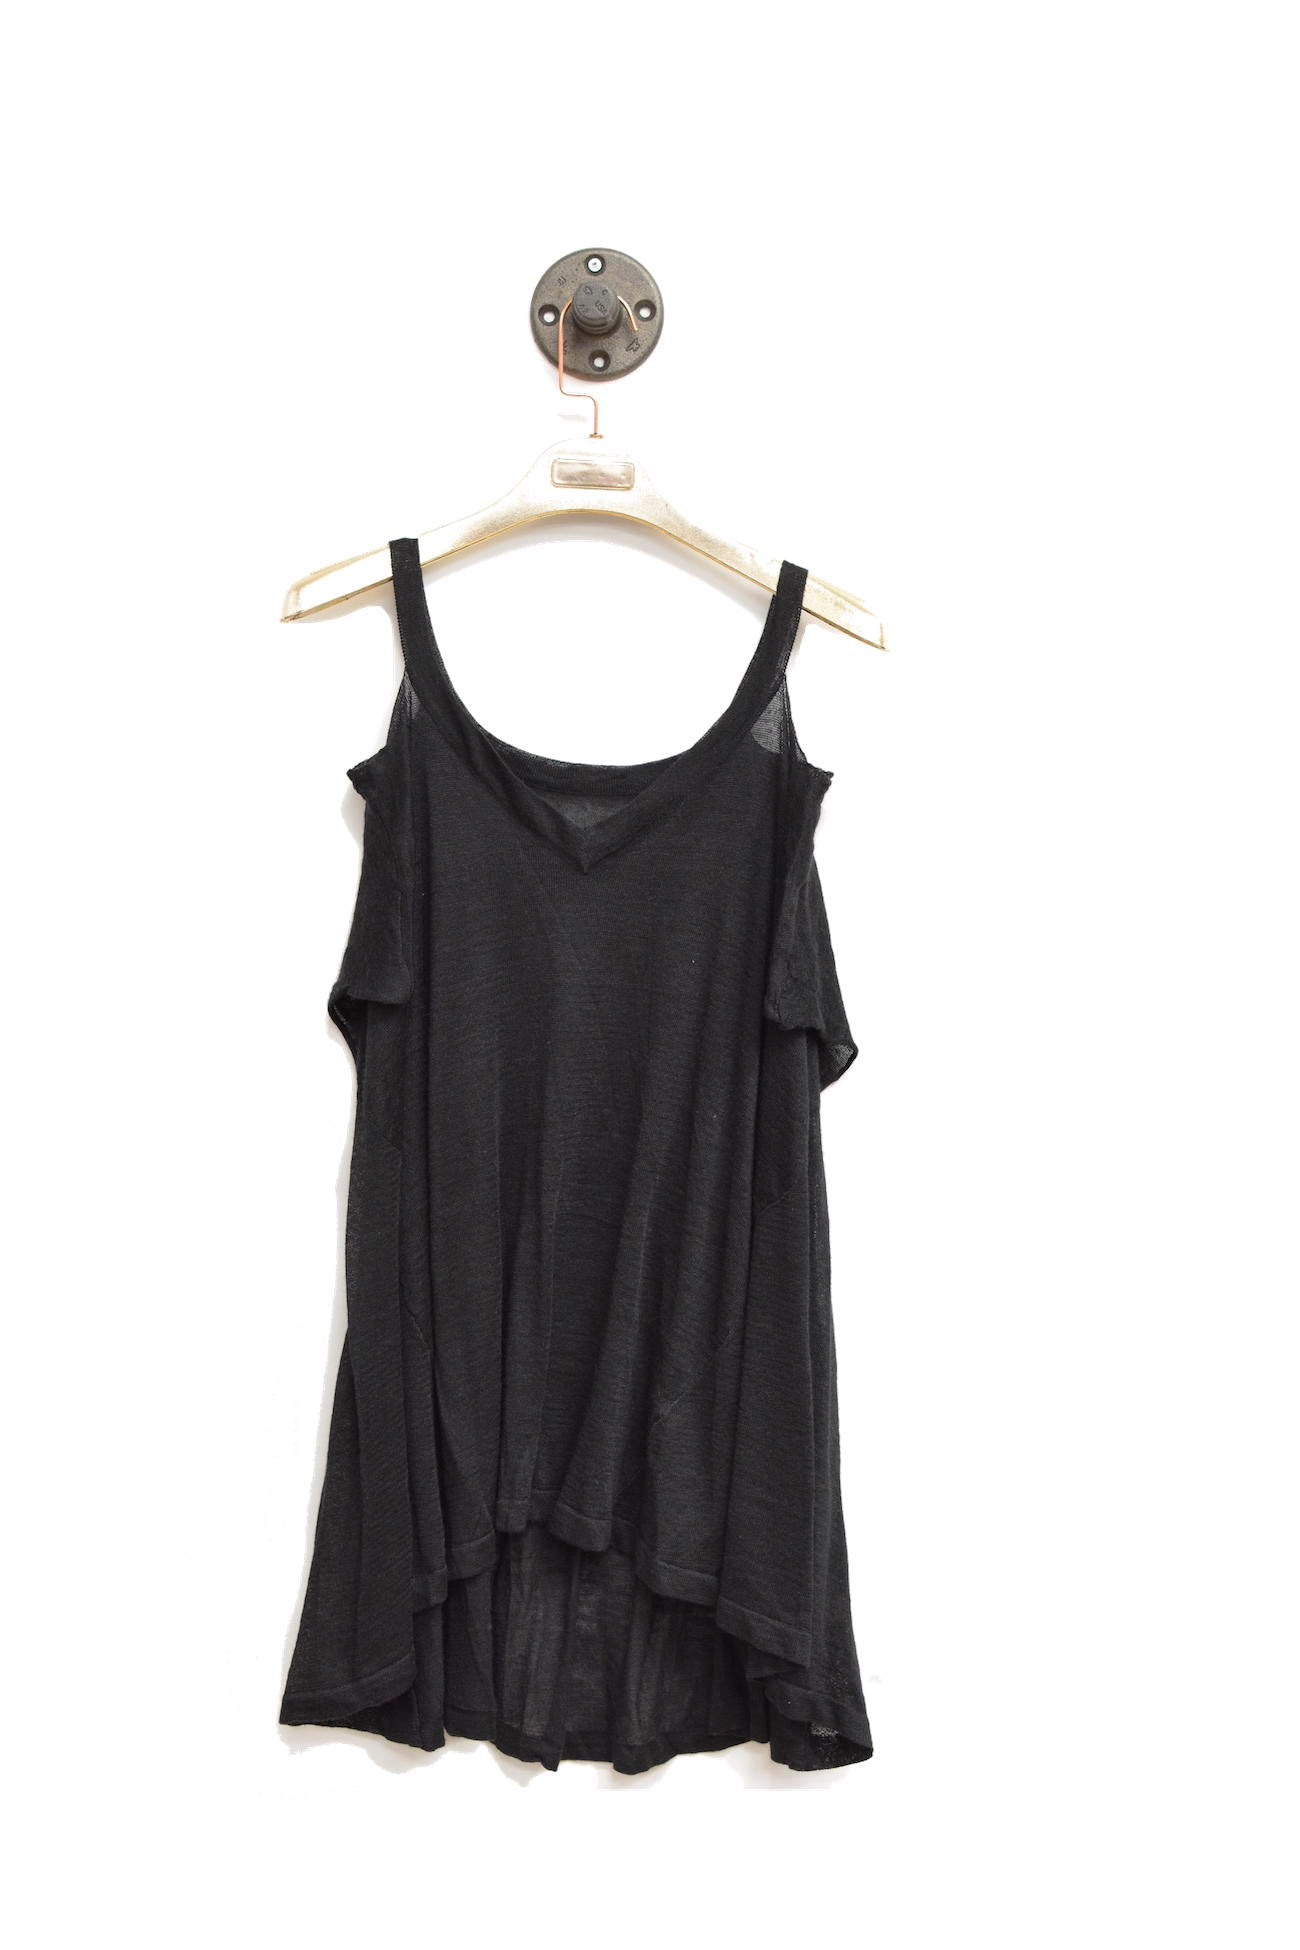 Black Shoulder Cut-Out Top That Is Semi Sheer With V-Neckline